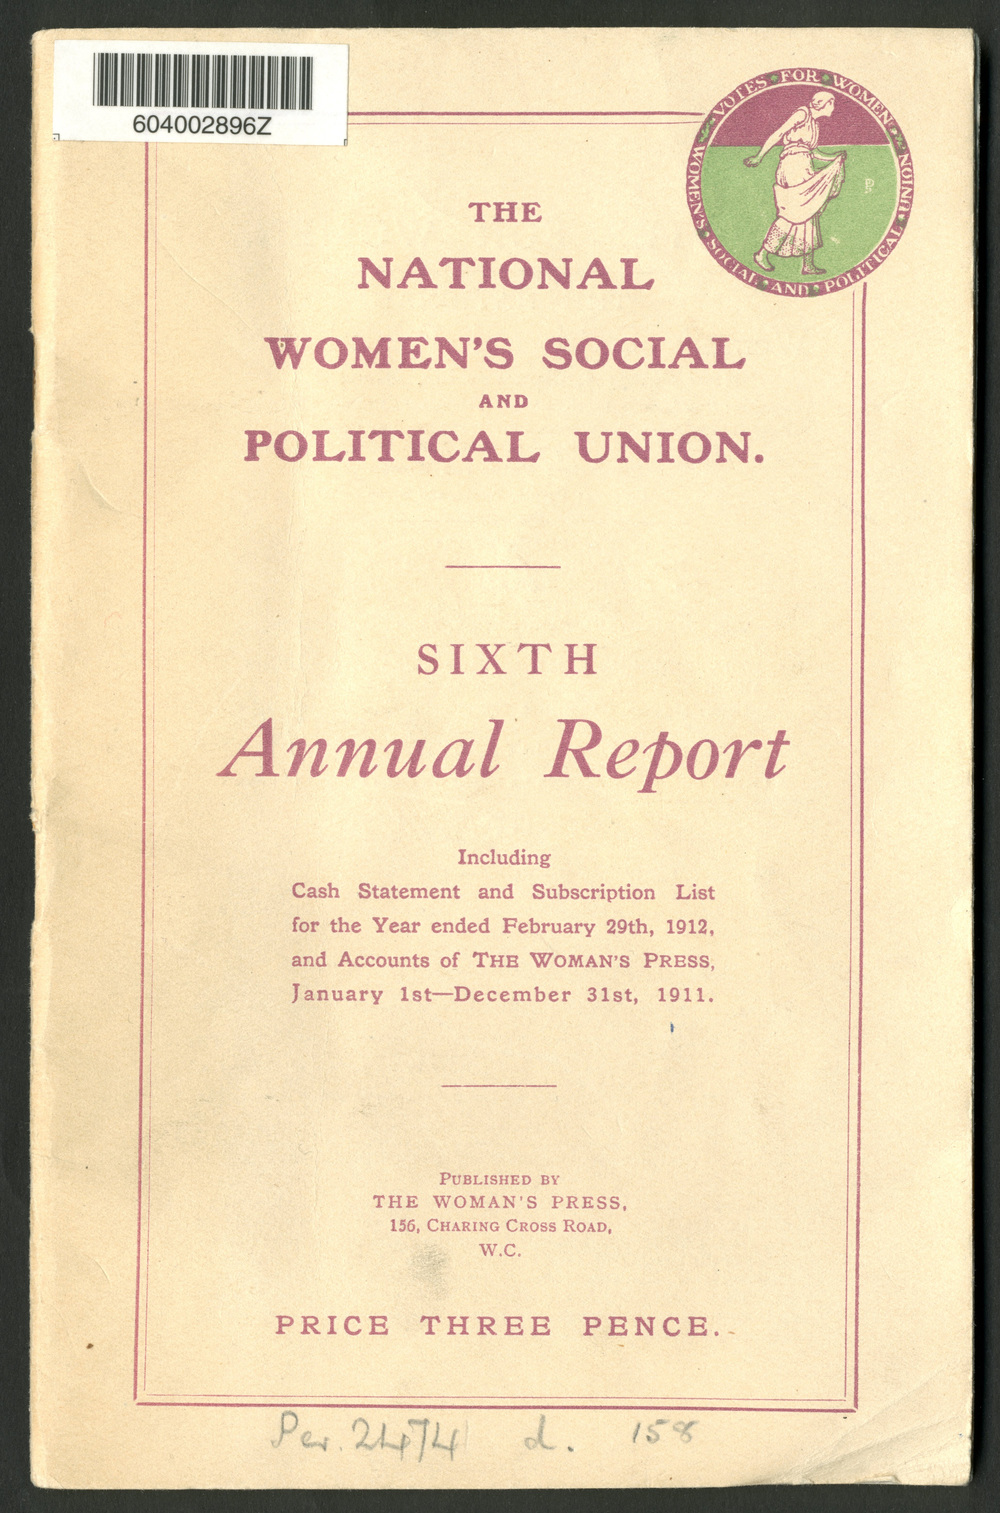 The National Women's Social and Political Union, sixth annual report